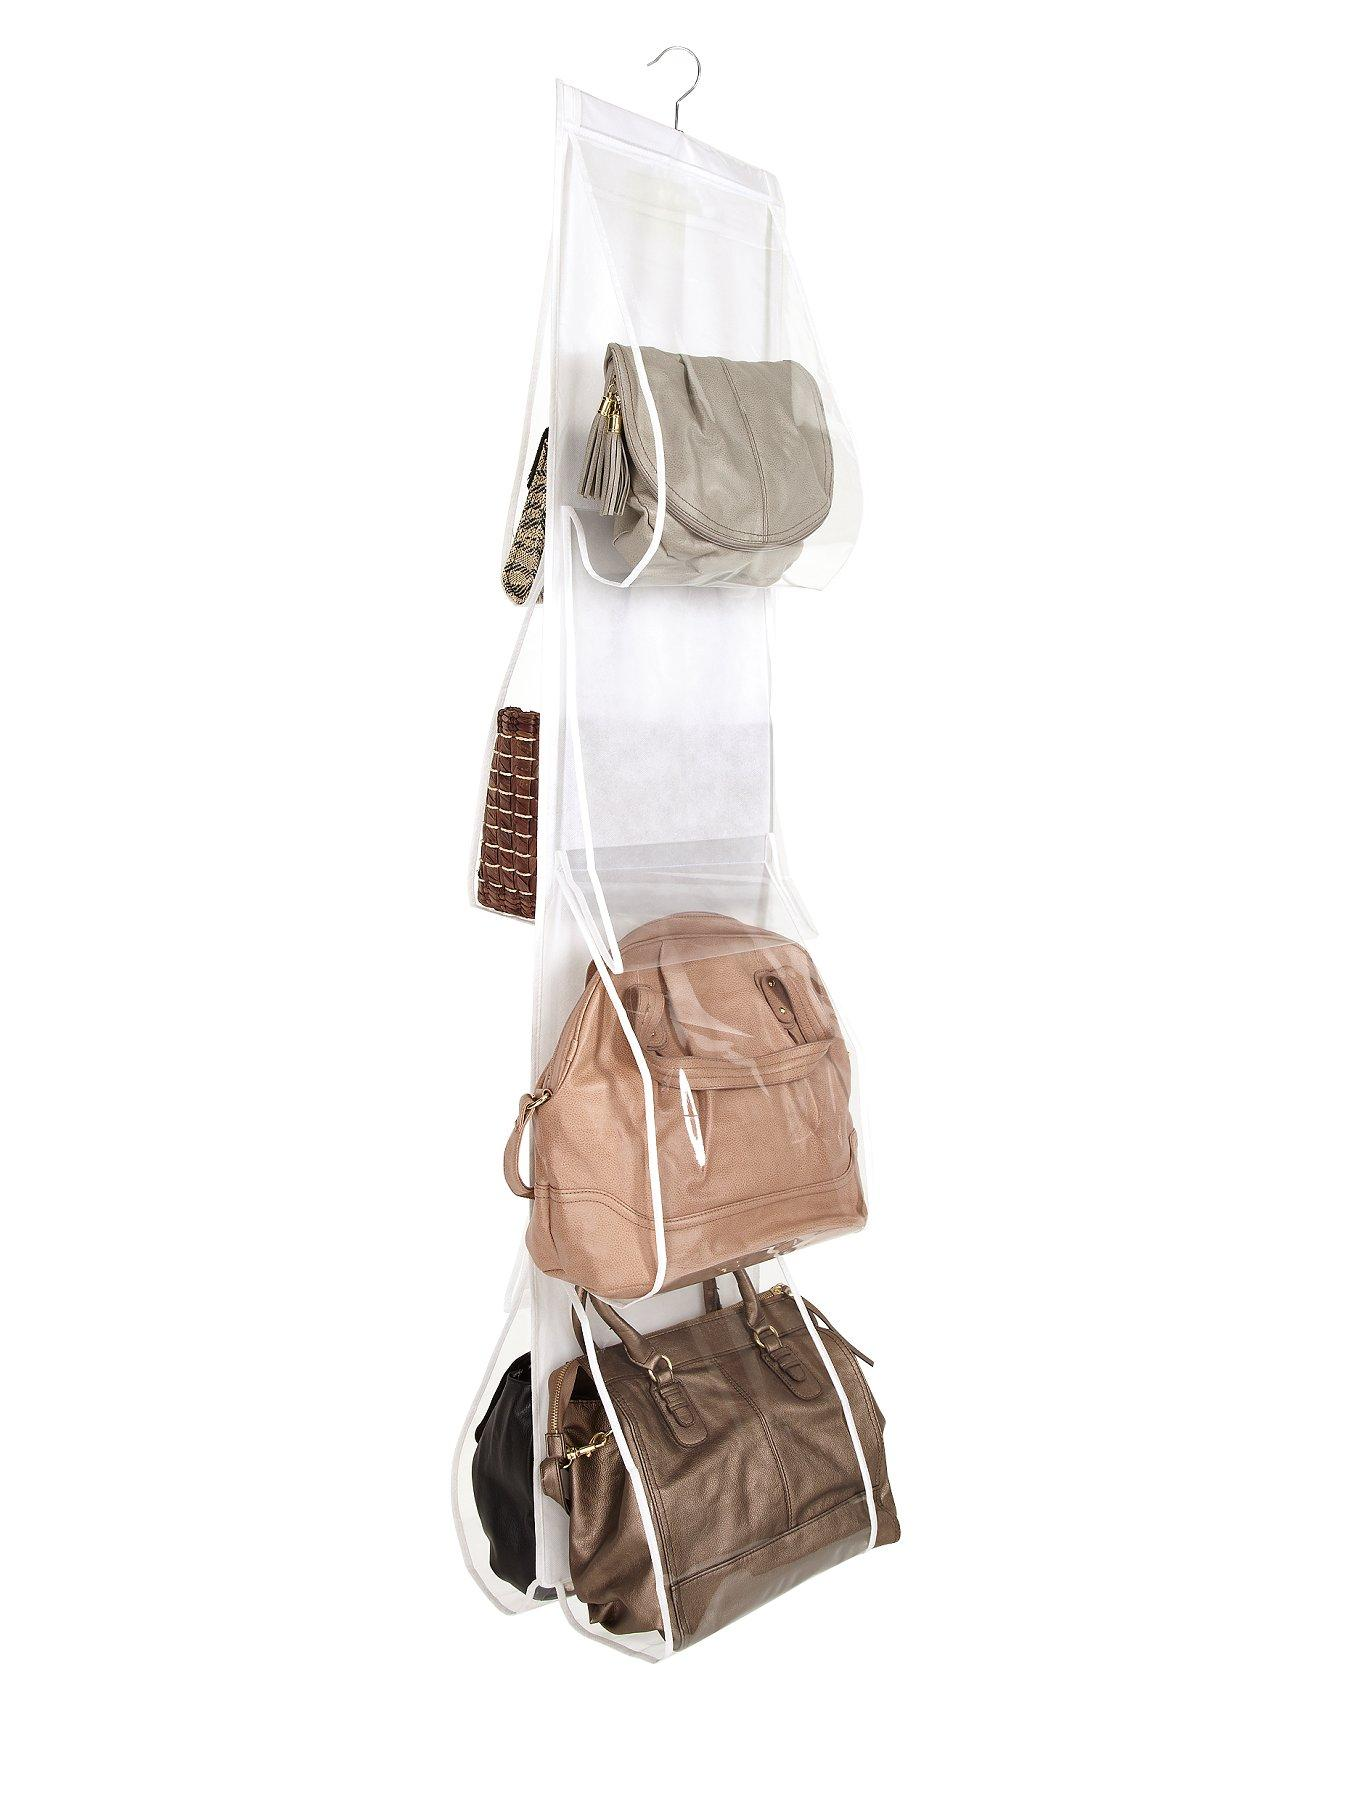 Ideal Handbag Organiser